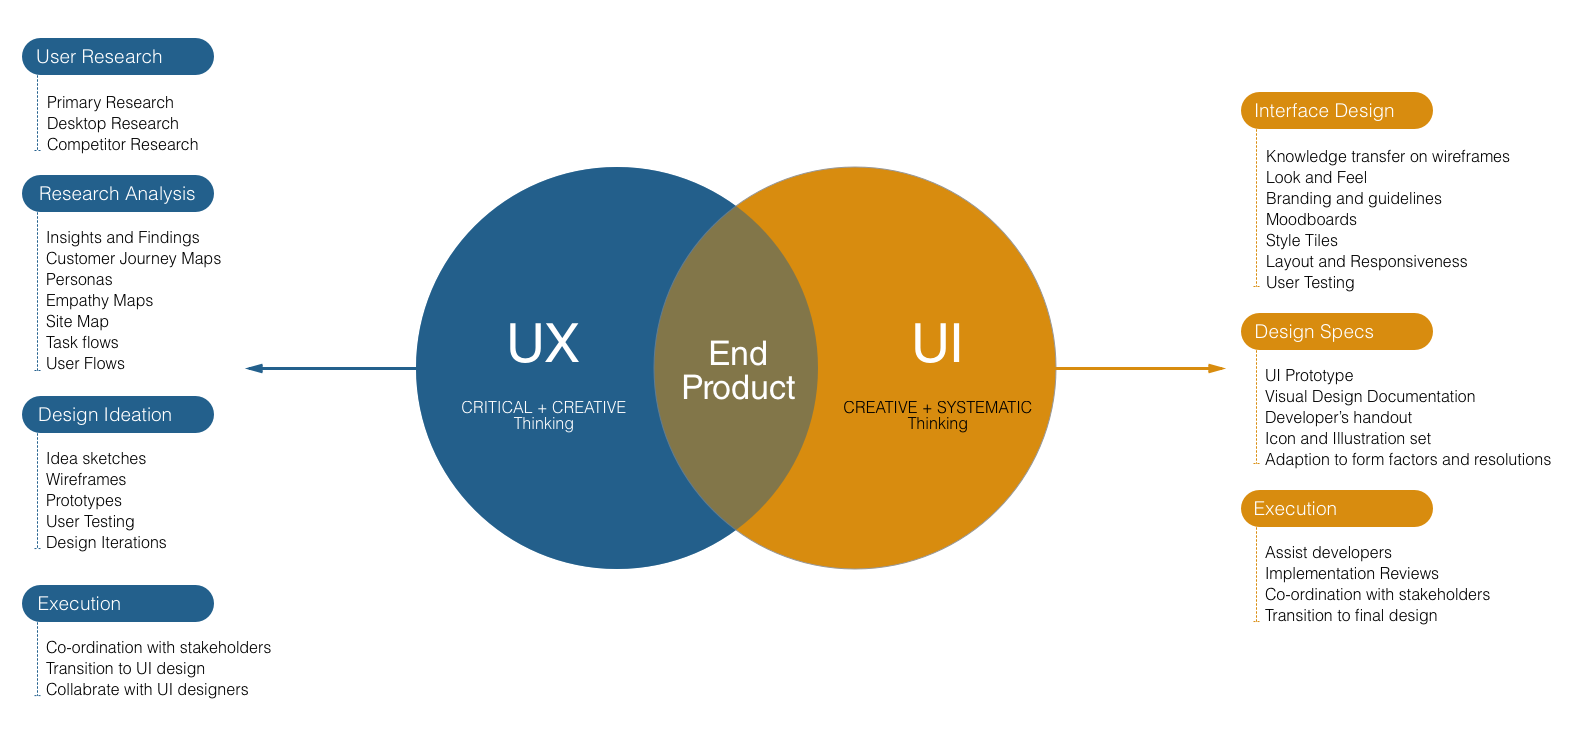 Ux Vs Ui Similarity Differences By Ajay Mittal Prototypr